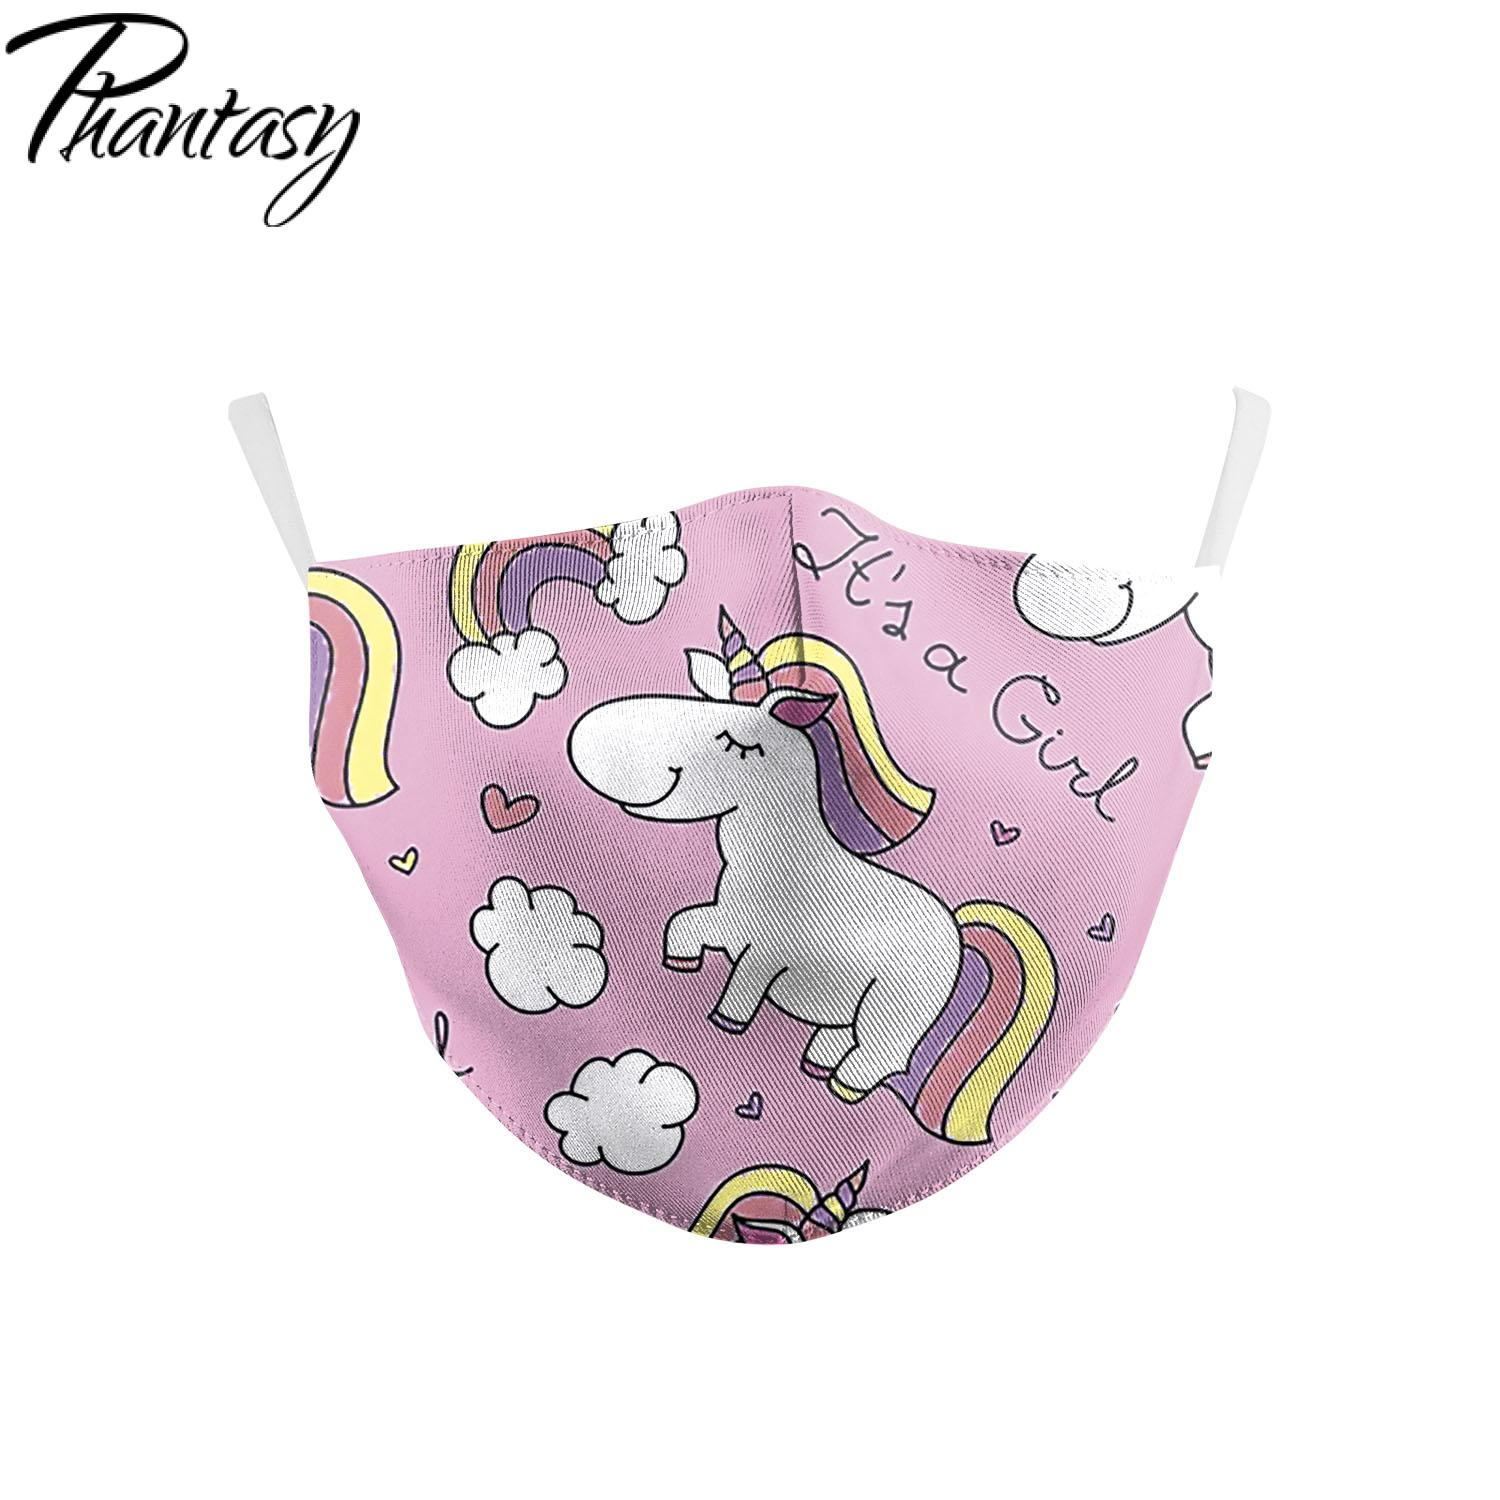 Phantasy Children's Baby Cute Cartoon Unicorn Printed Face Mask Washable Protective Dust-Proof Anti-Fog Pluggable Filter Masks